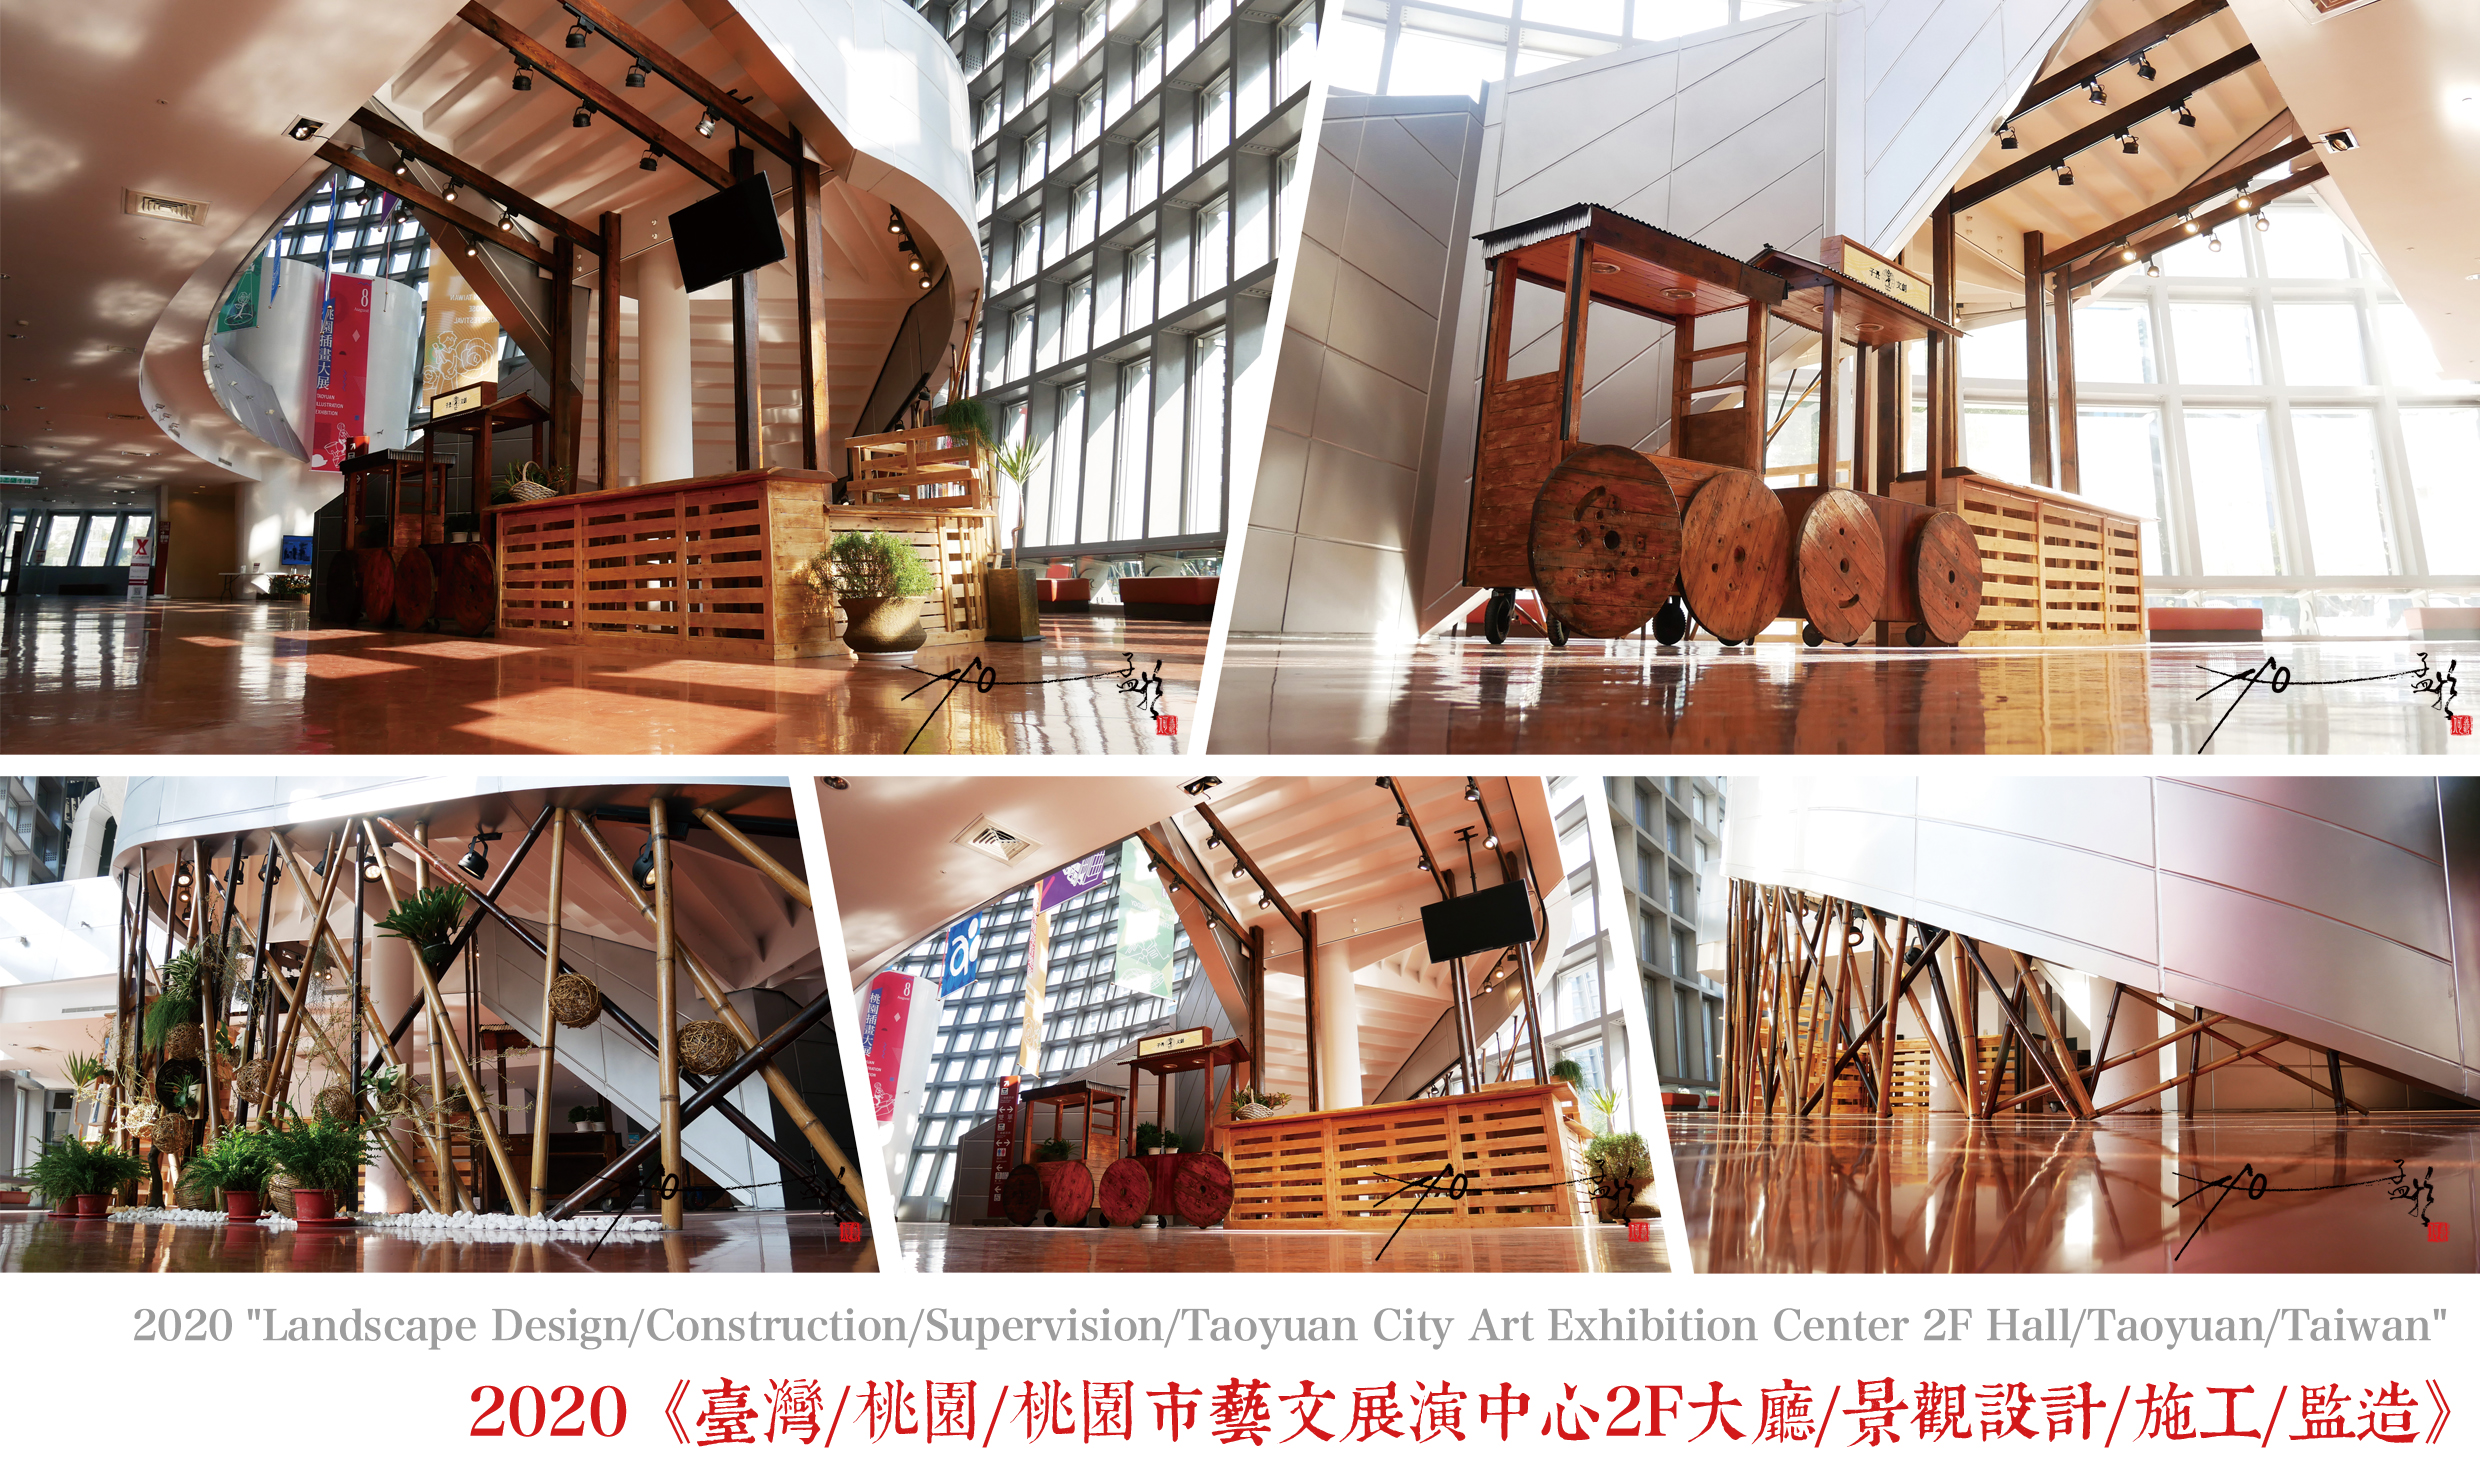 "2020 ""Landscape Design/Construction/Supervision/Taoyuan City Art Exhibition Center 2F Hall/Taoyuan/Taiwan""2020《臺灣/桃園/桃園市藝文展演中心2F大廳/景觀設計/施工/監造》【Just Jump Culture all rights reserved子丑文創/版權所有】"